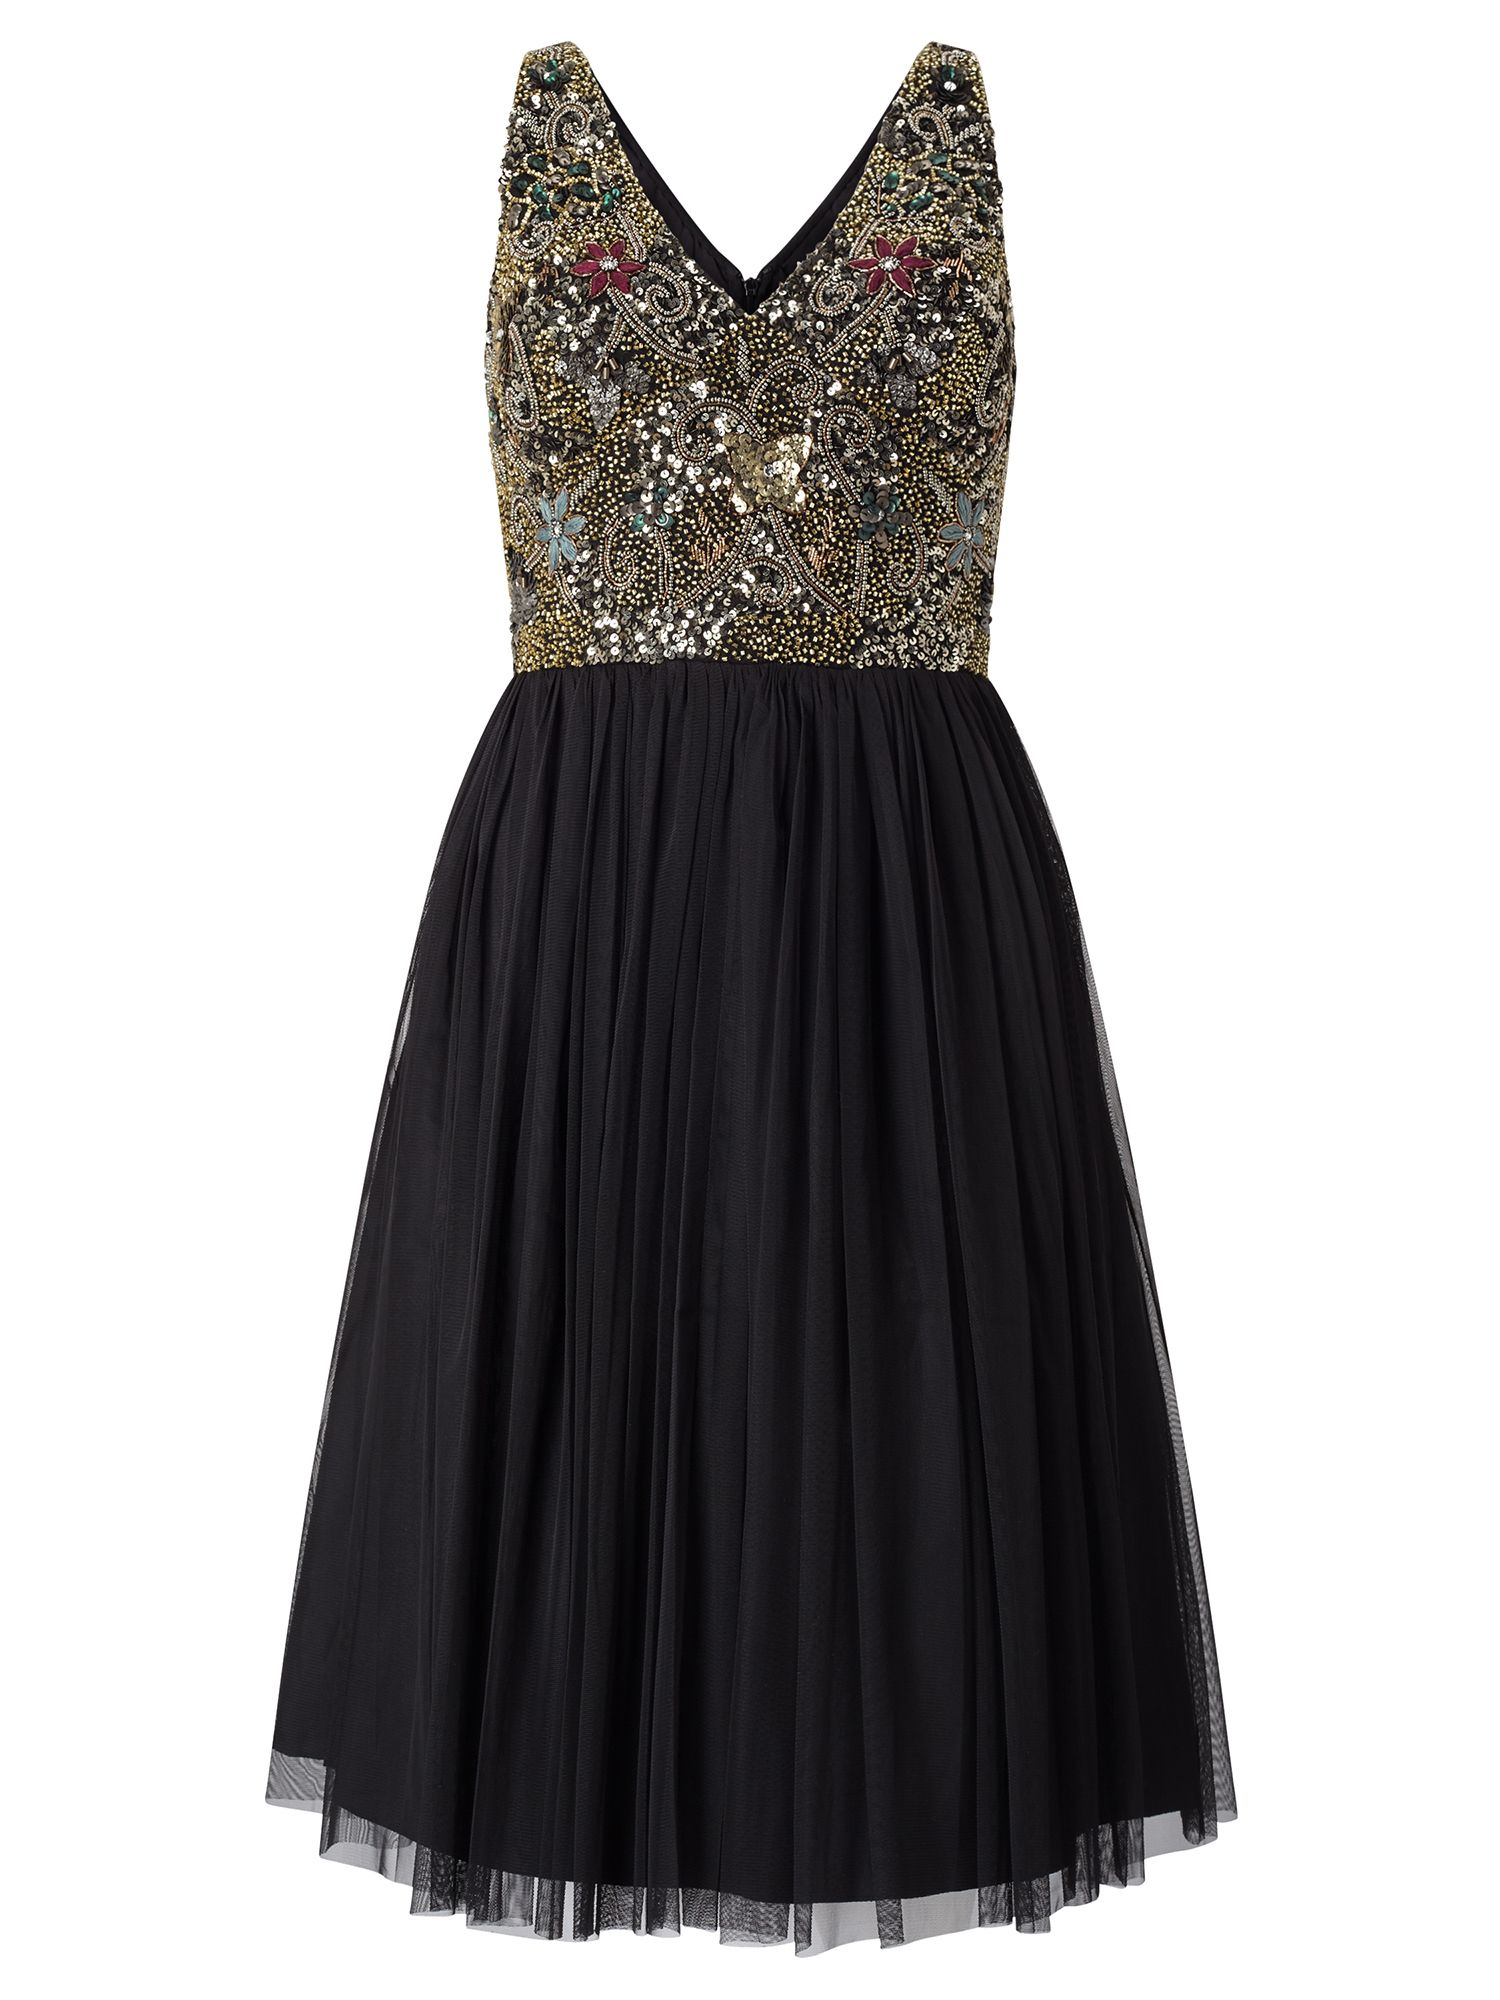 Adrianna Papell Sequin Bodice Cocktail Dress, Black